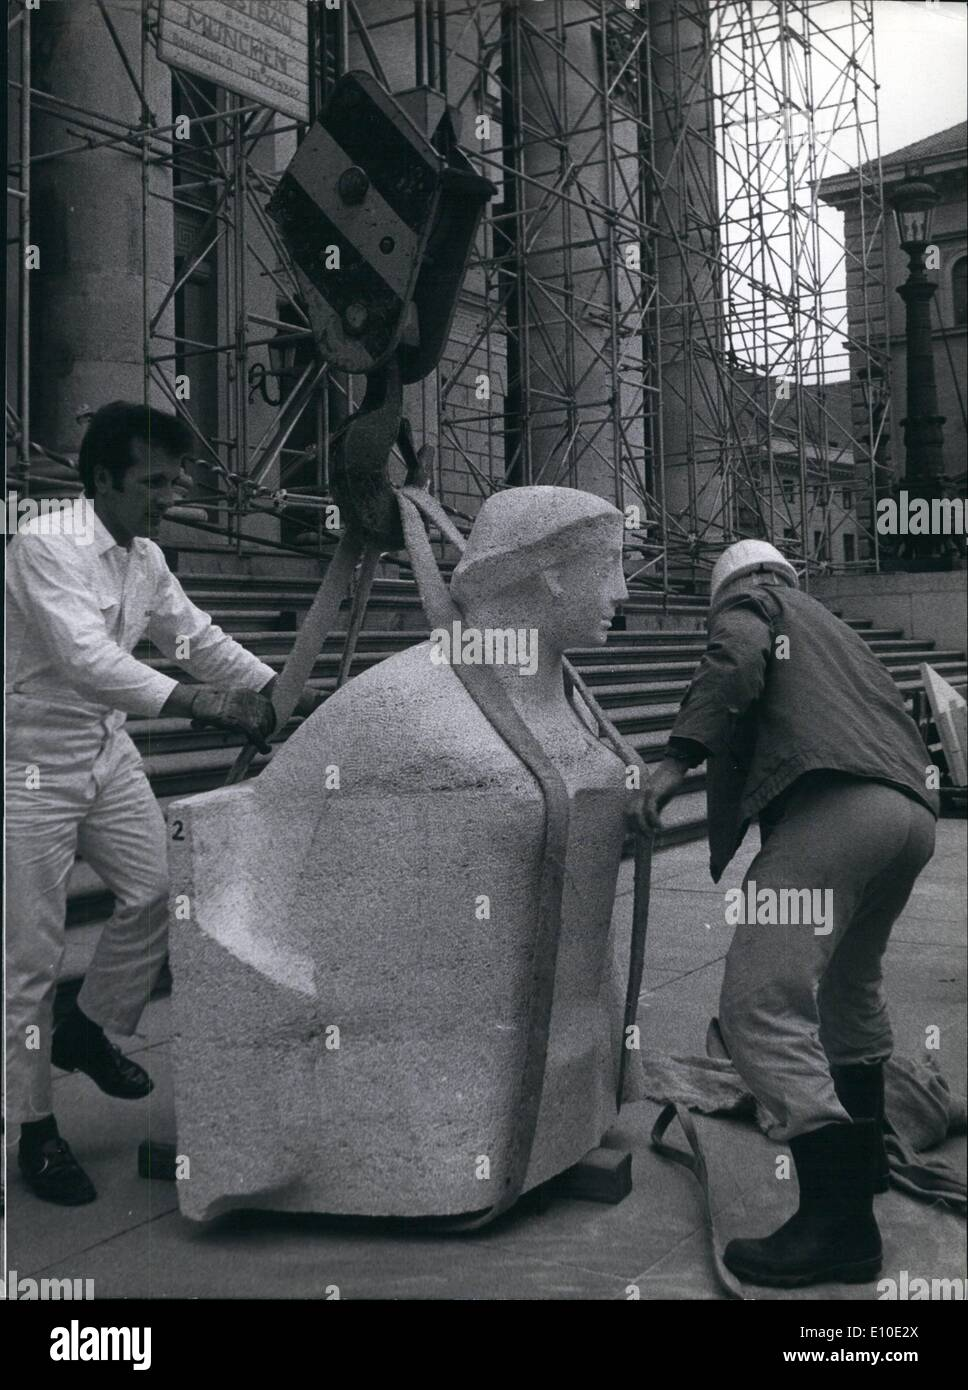 May 05, 1972 - Statues of Greed Gods to decorate the Munich Festival theater: Apollo is being prepared to get to his place on the gable of the Munich National Theater where he will be placed between his nine Muses. The statues were created by Professor Georg Branning who will in the next days do some finishing work on the 9000kg weighing colossus. The ceremonious unveiling will be on June 17th. - Stock Image